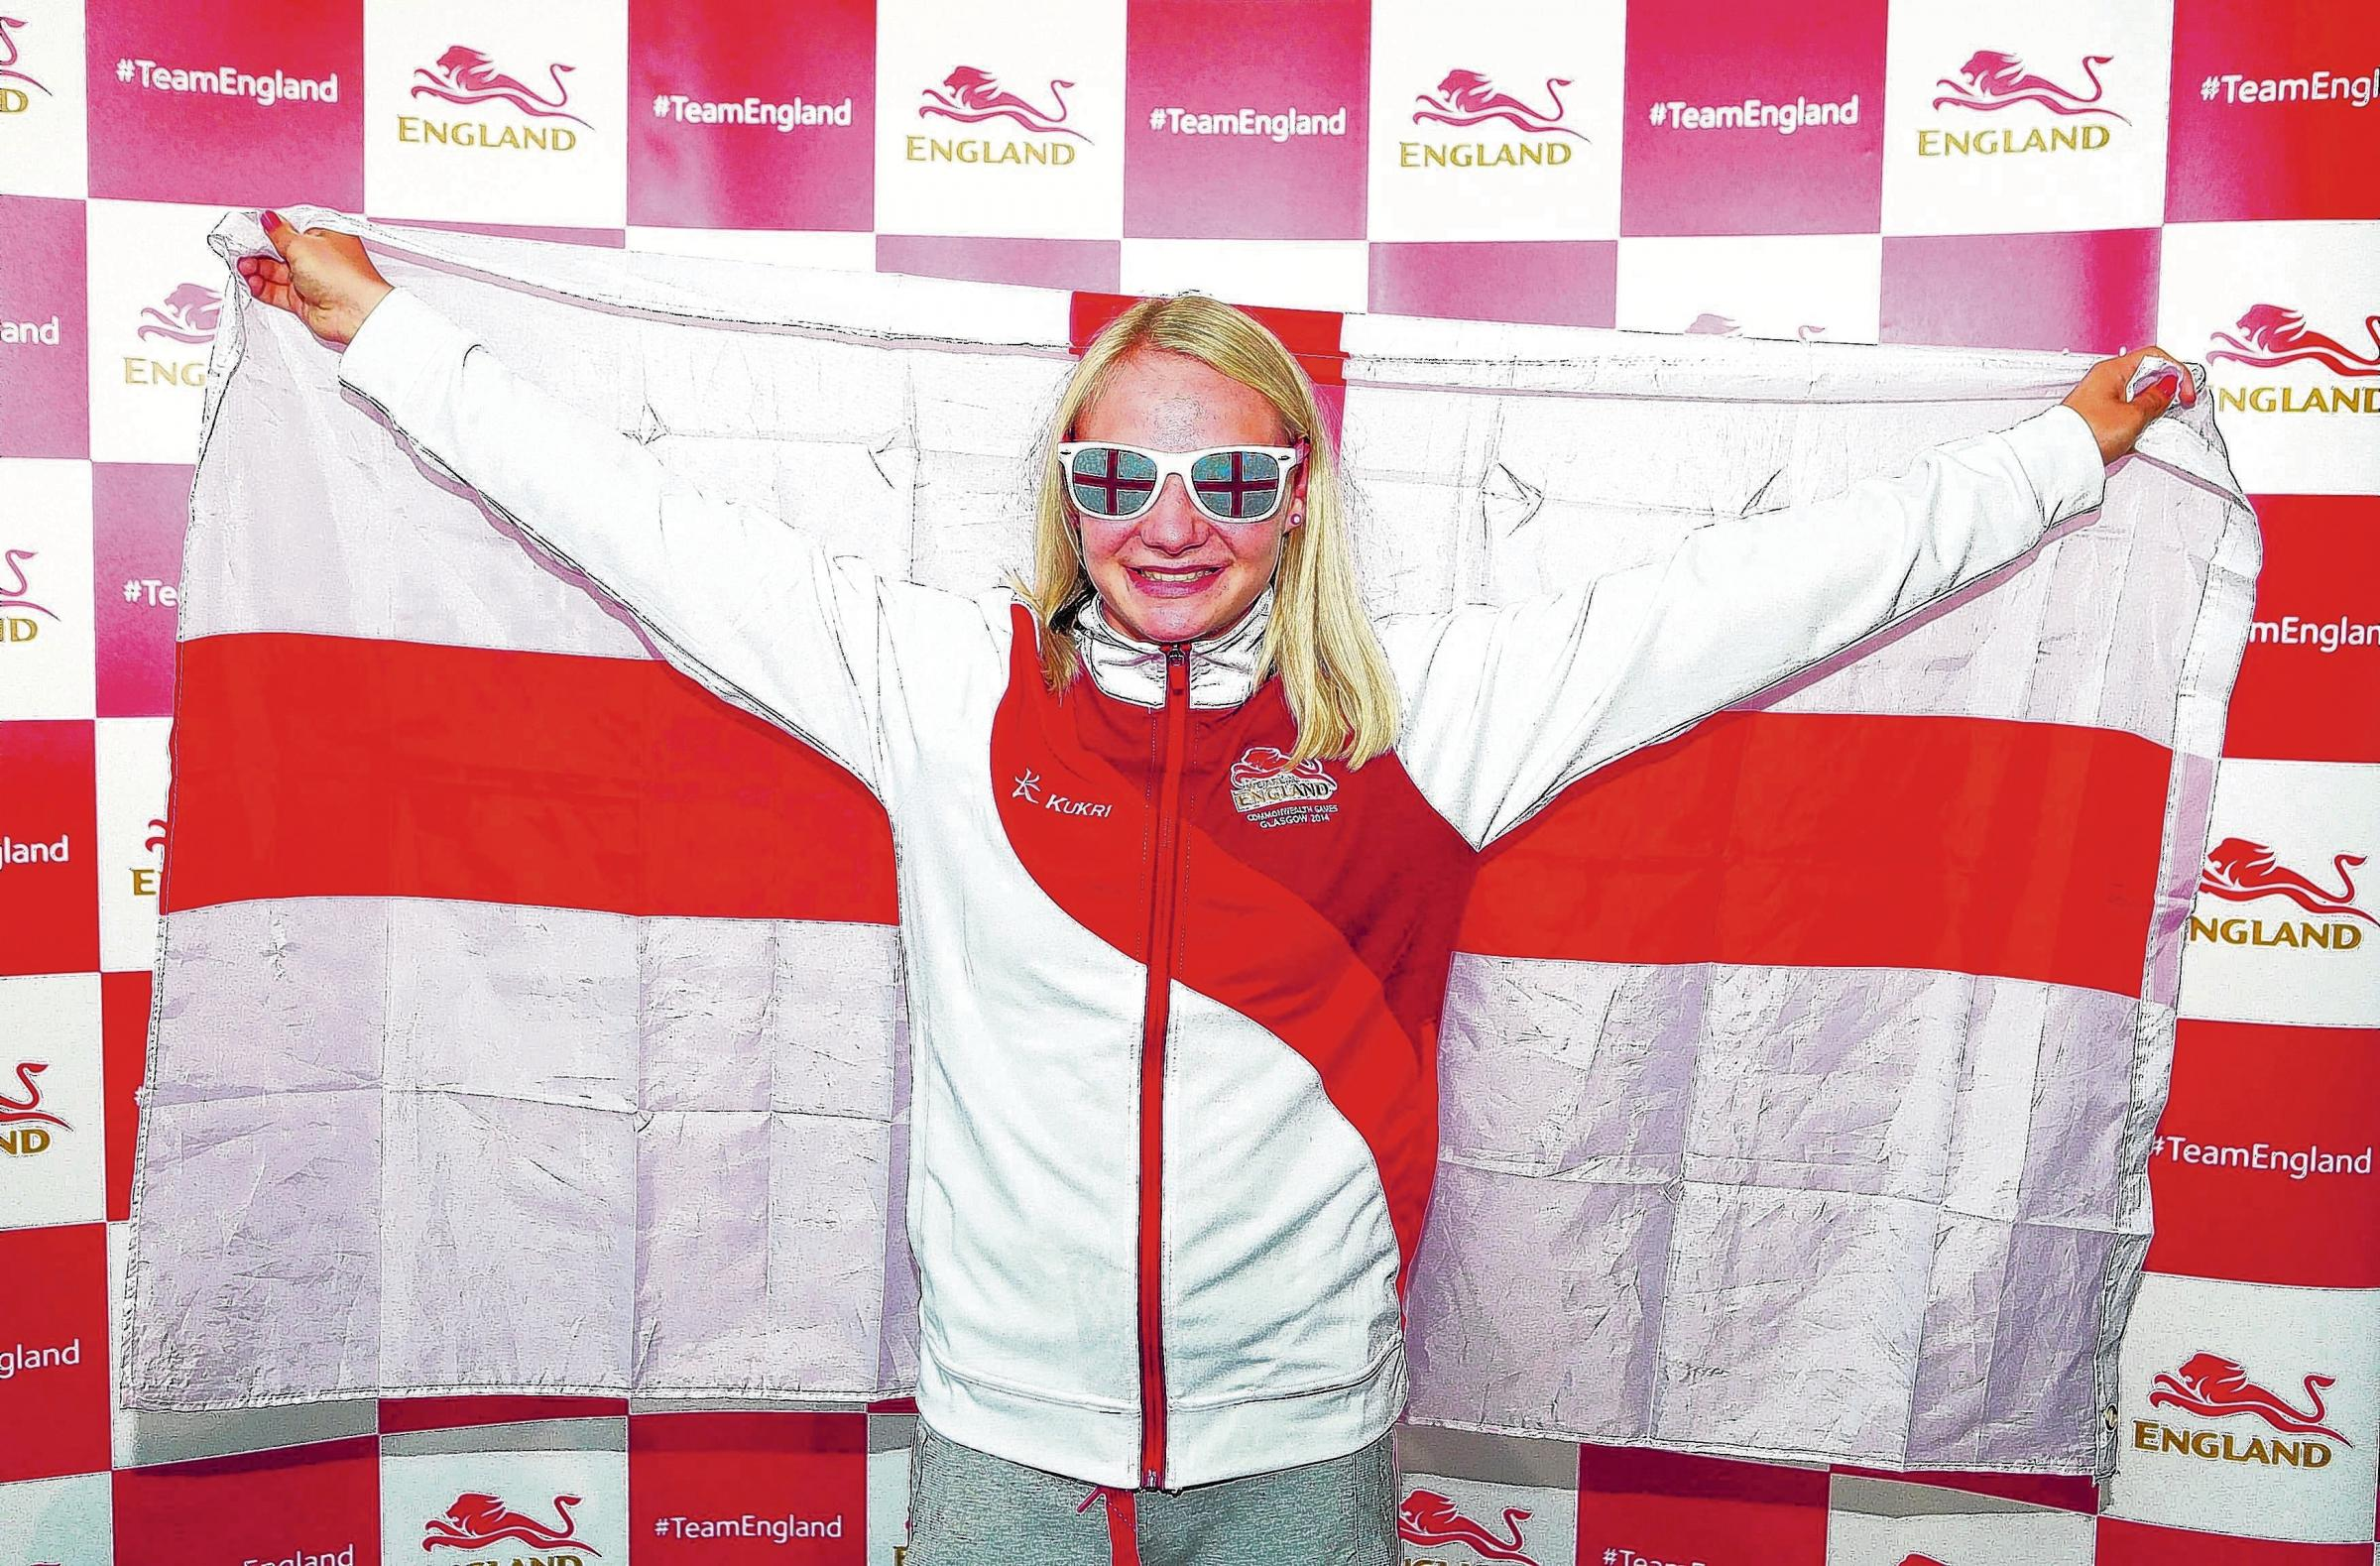 Hayley McLean getting her England kit for the Commonwealth Games earlier this week